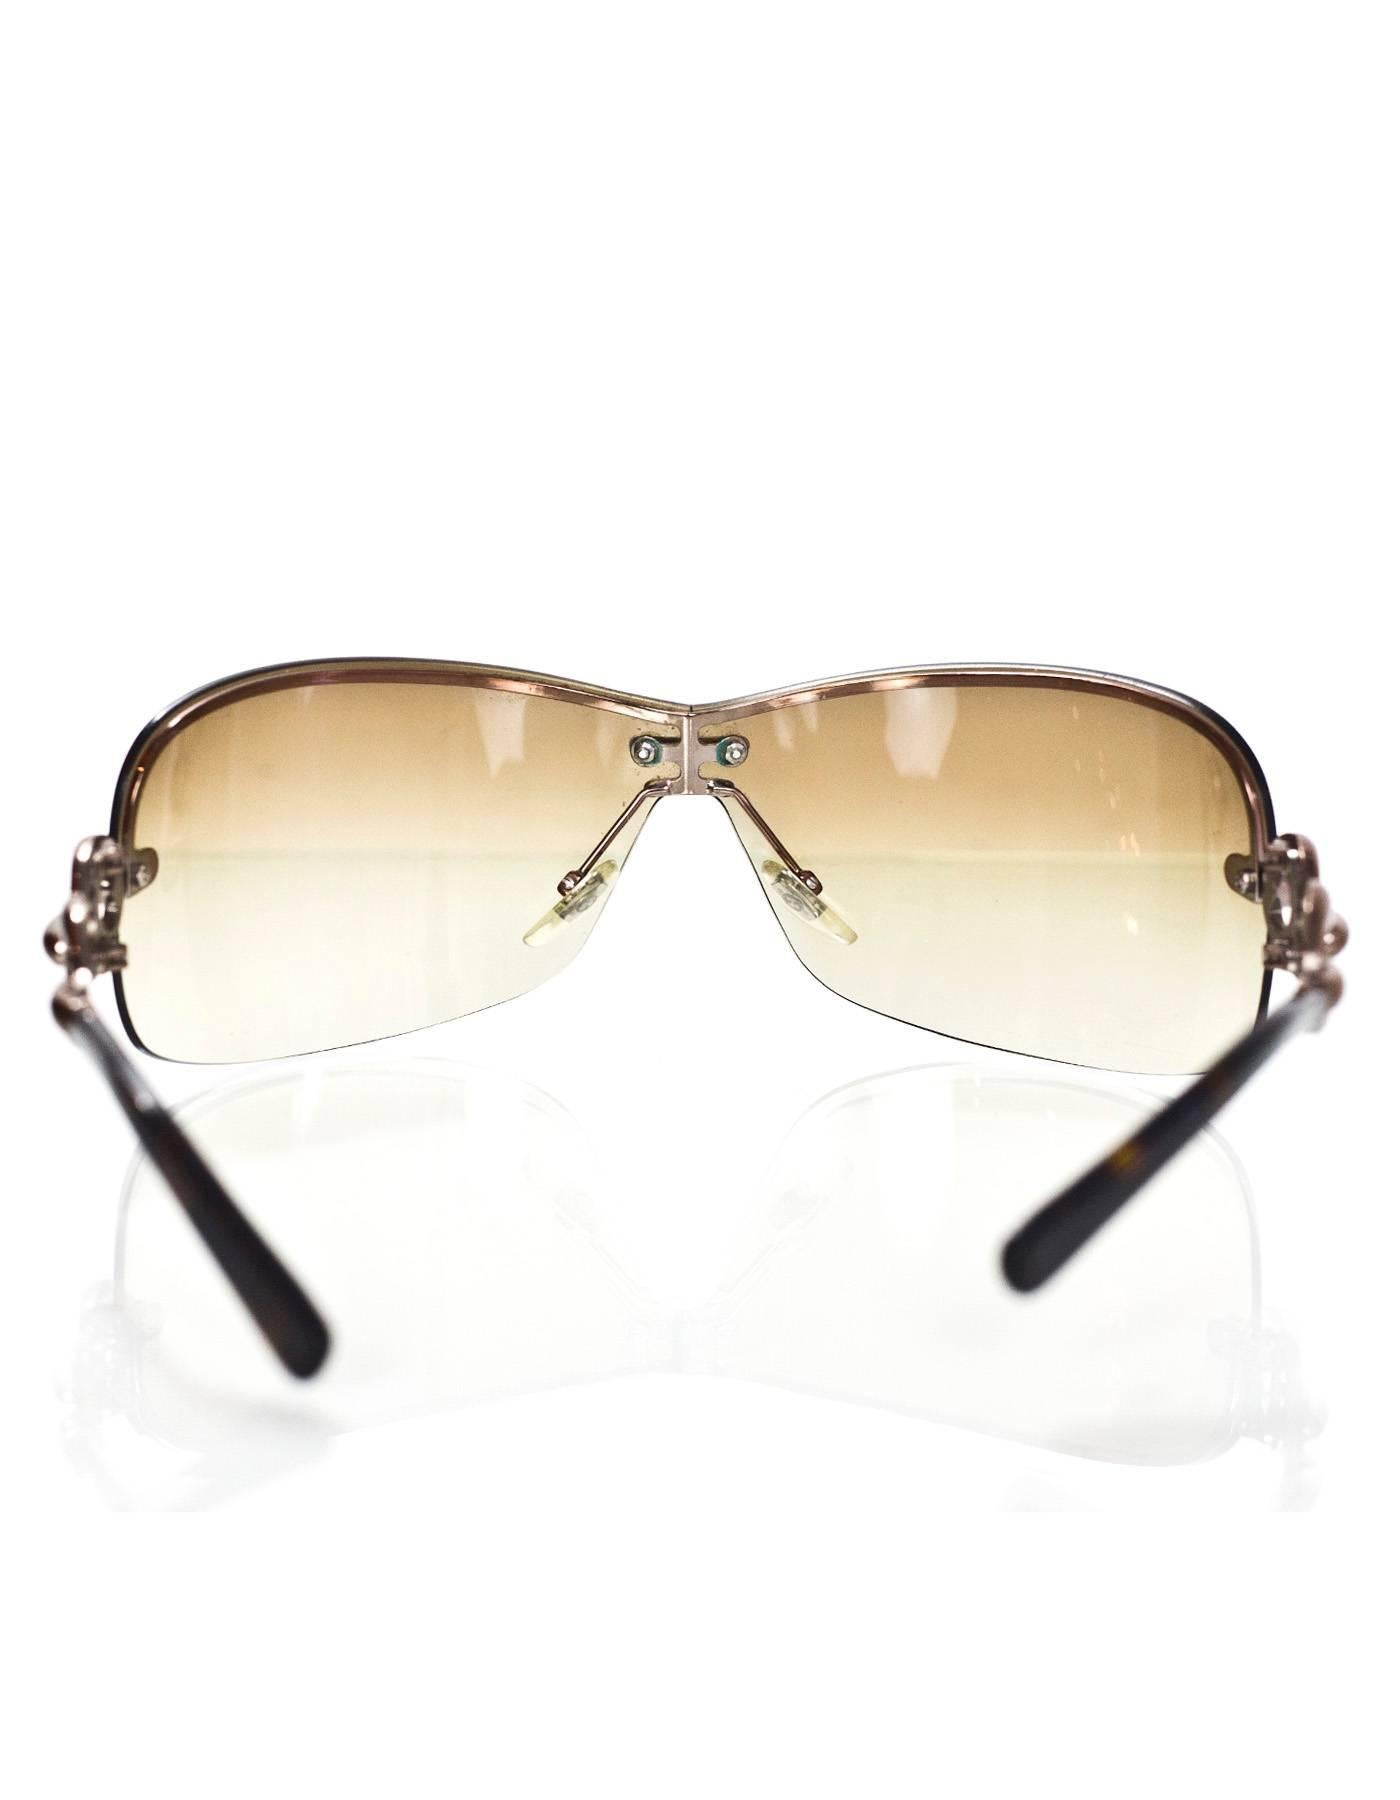 640e184dcc9 Gucci Brown Shield Sunglasses with Box and Case For Sale at 1stdibs